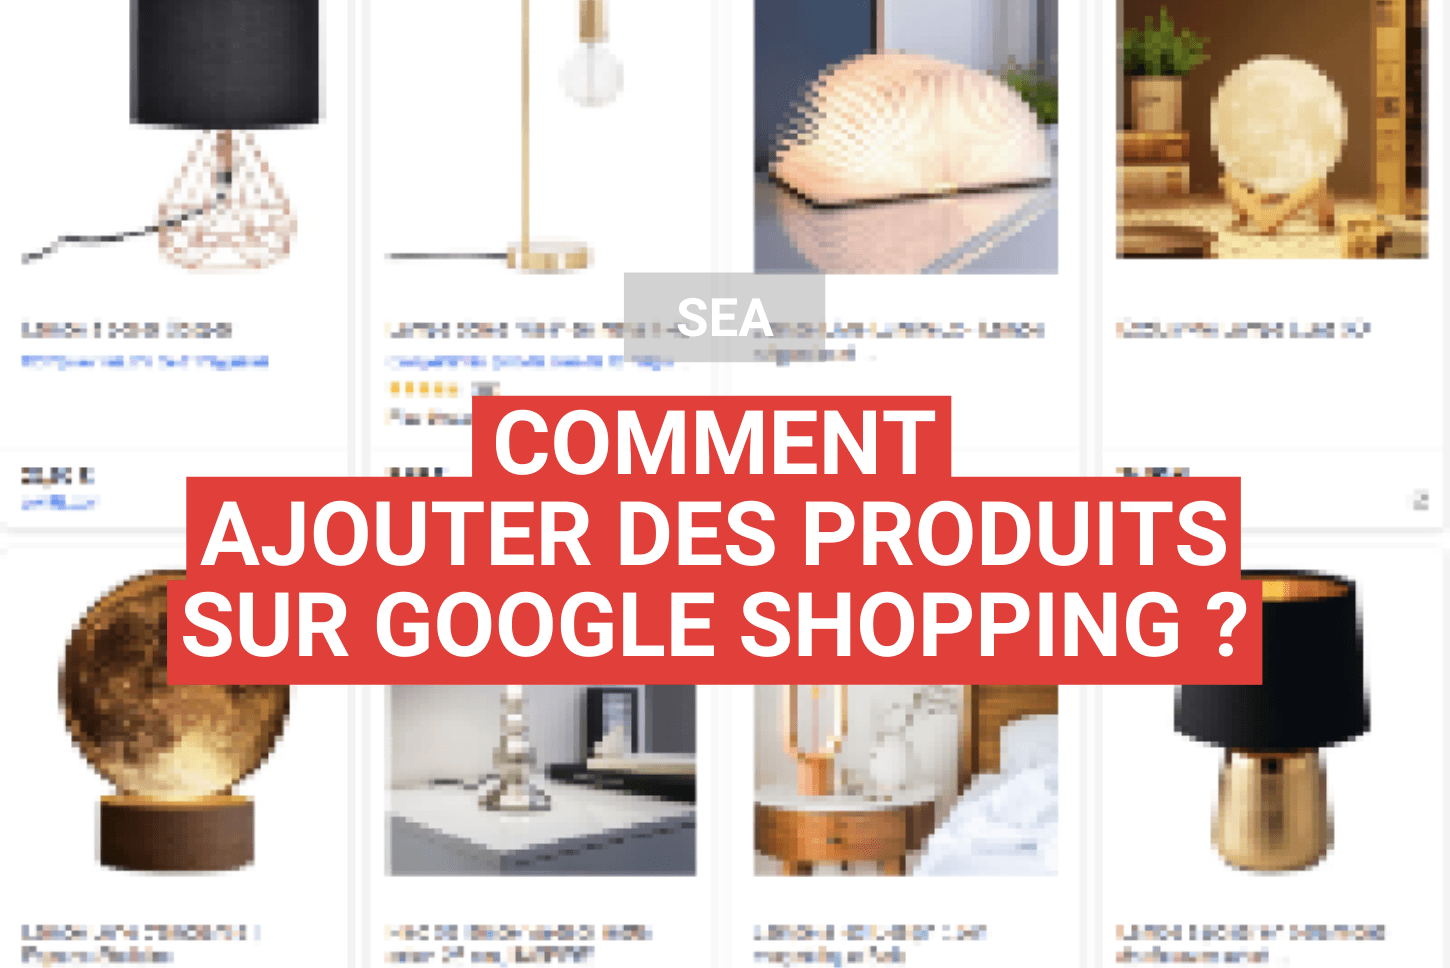 How do I add products to Google Shopping?